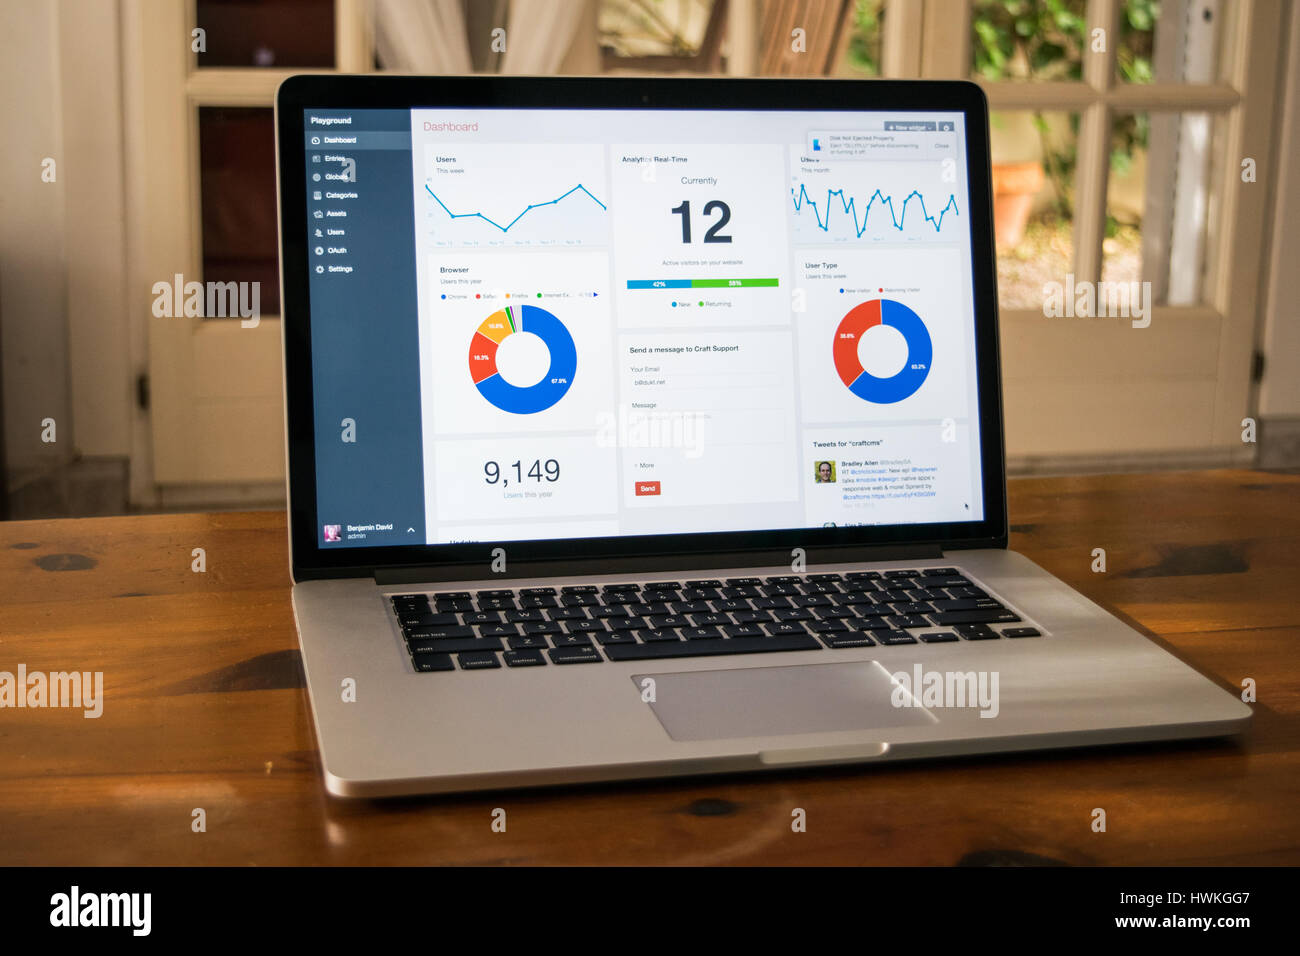 Silver laptop with analytical graph on the screen on the wooden table in home interior - Stock Image